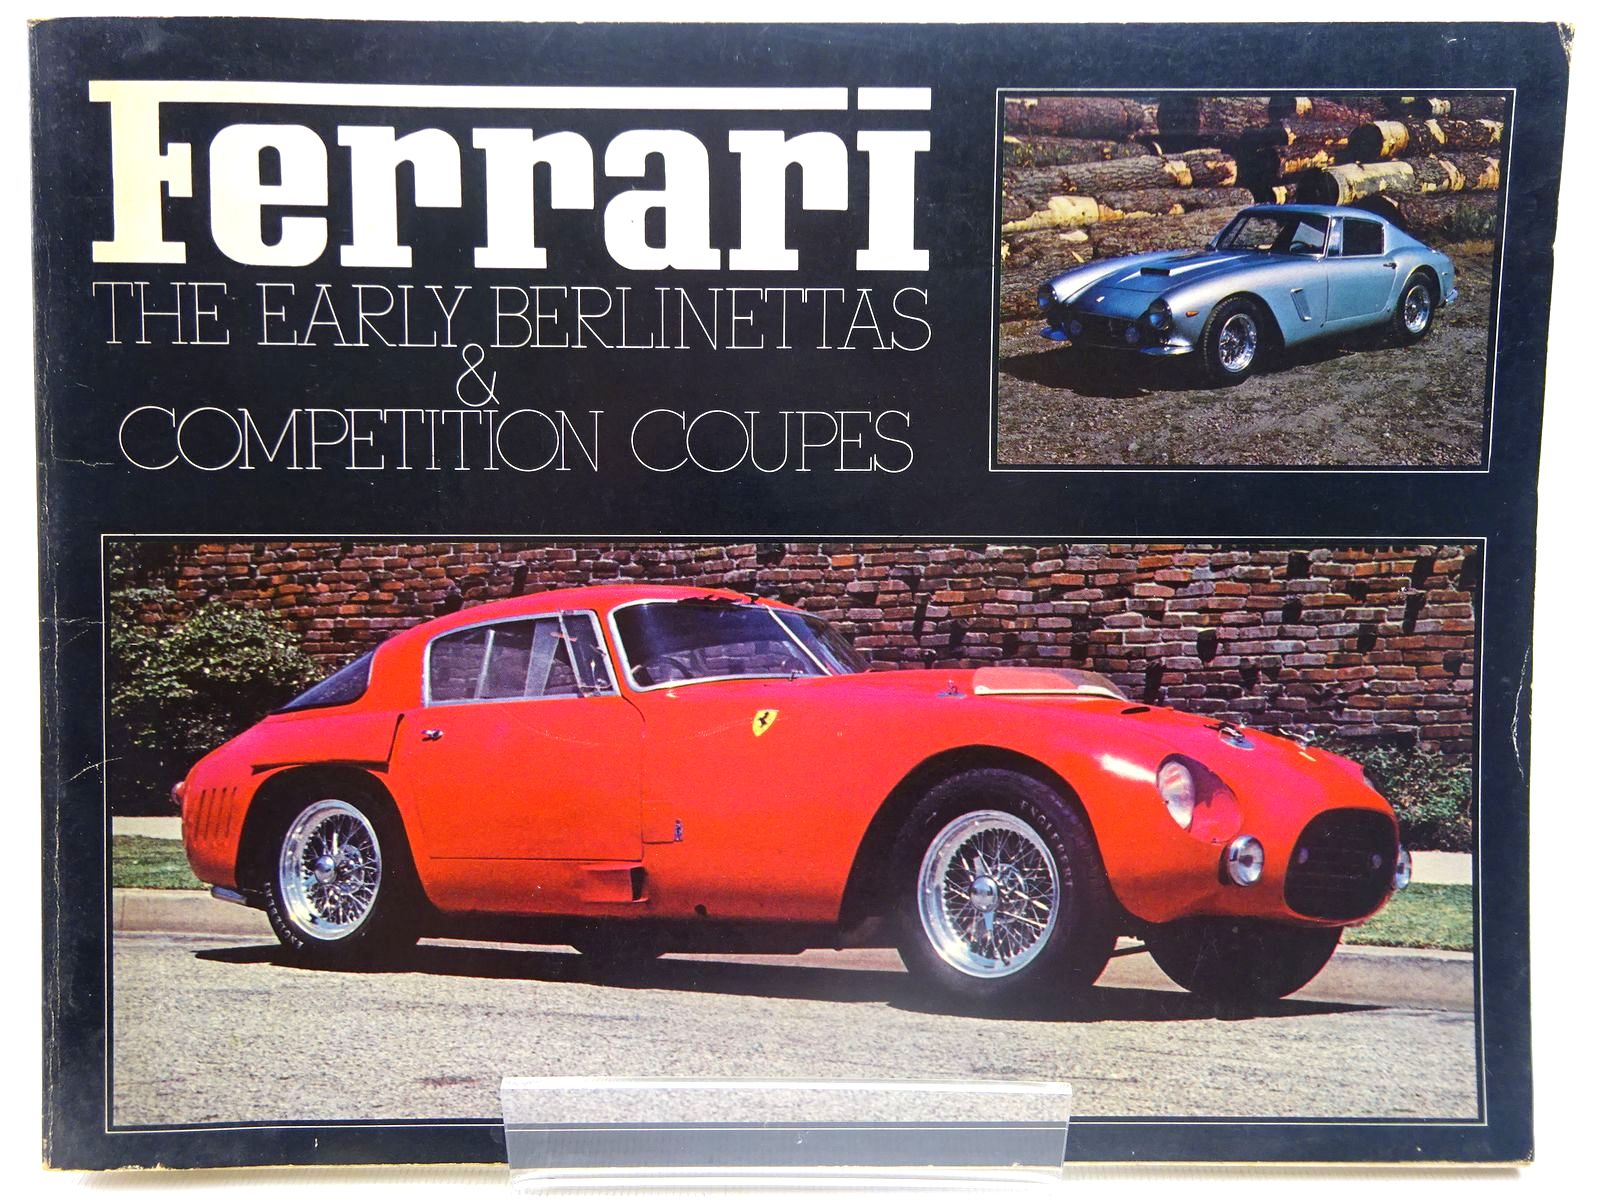 Photo of FERRARI THE EARLY BERLINETTAS & COMPETITION COUPES